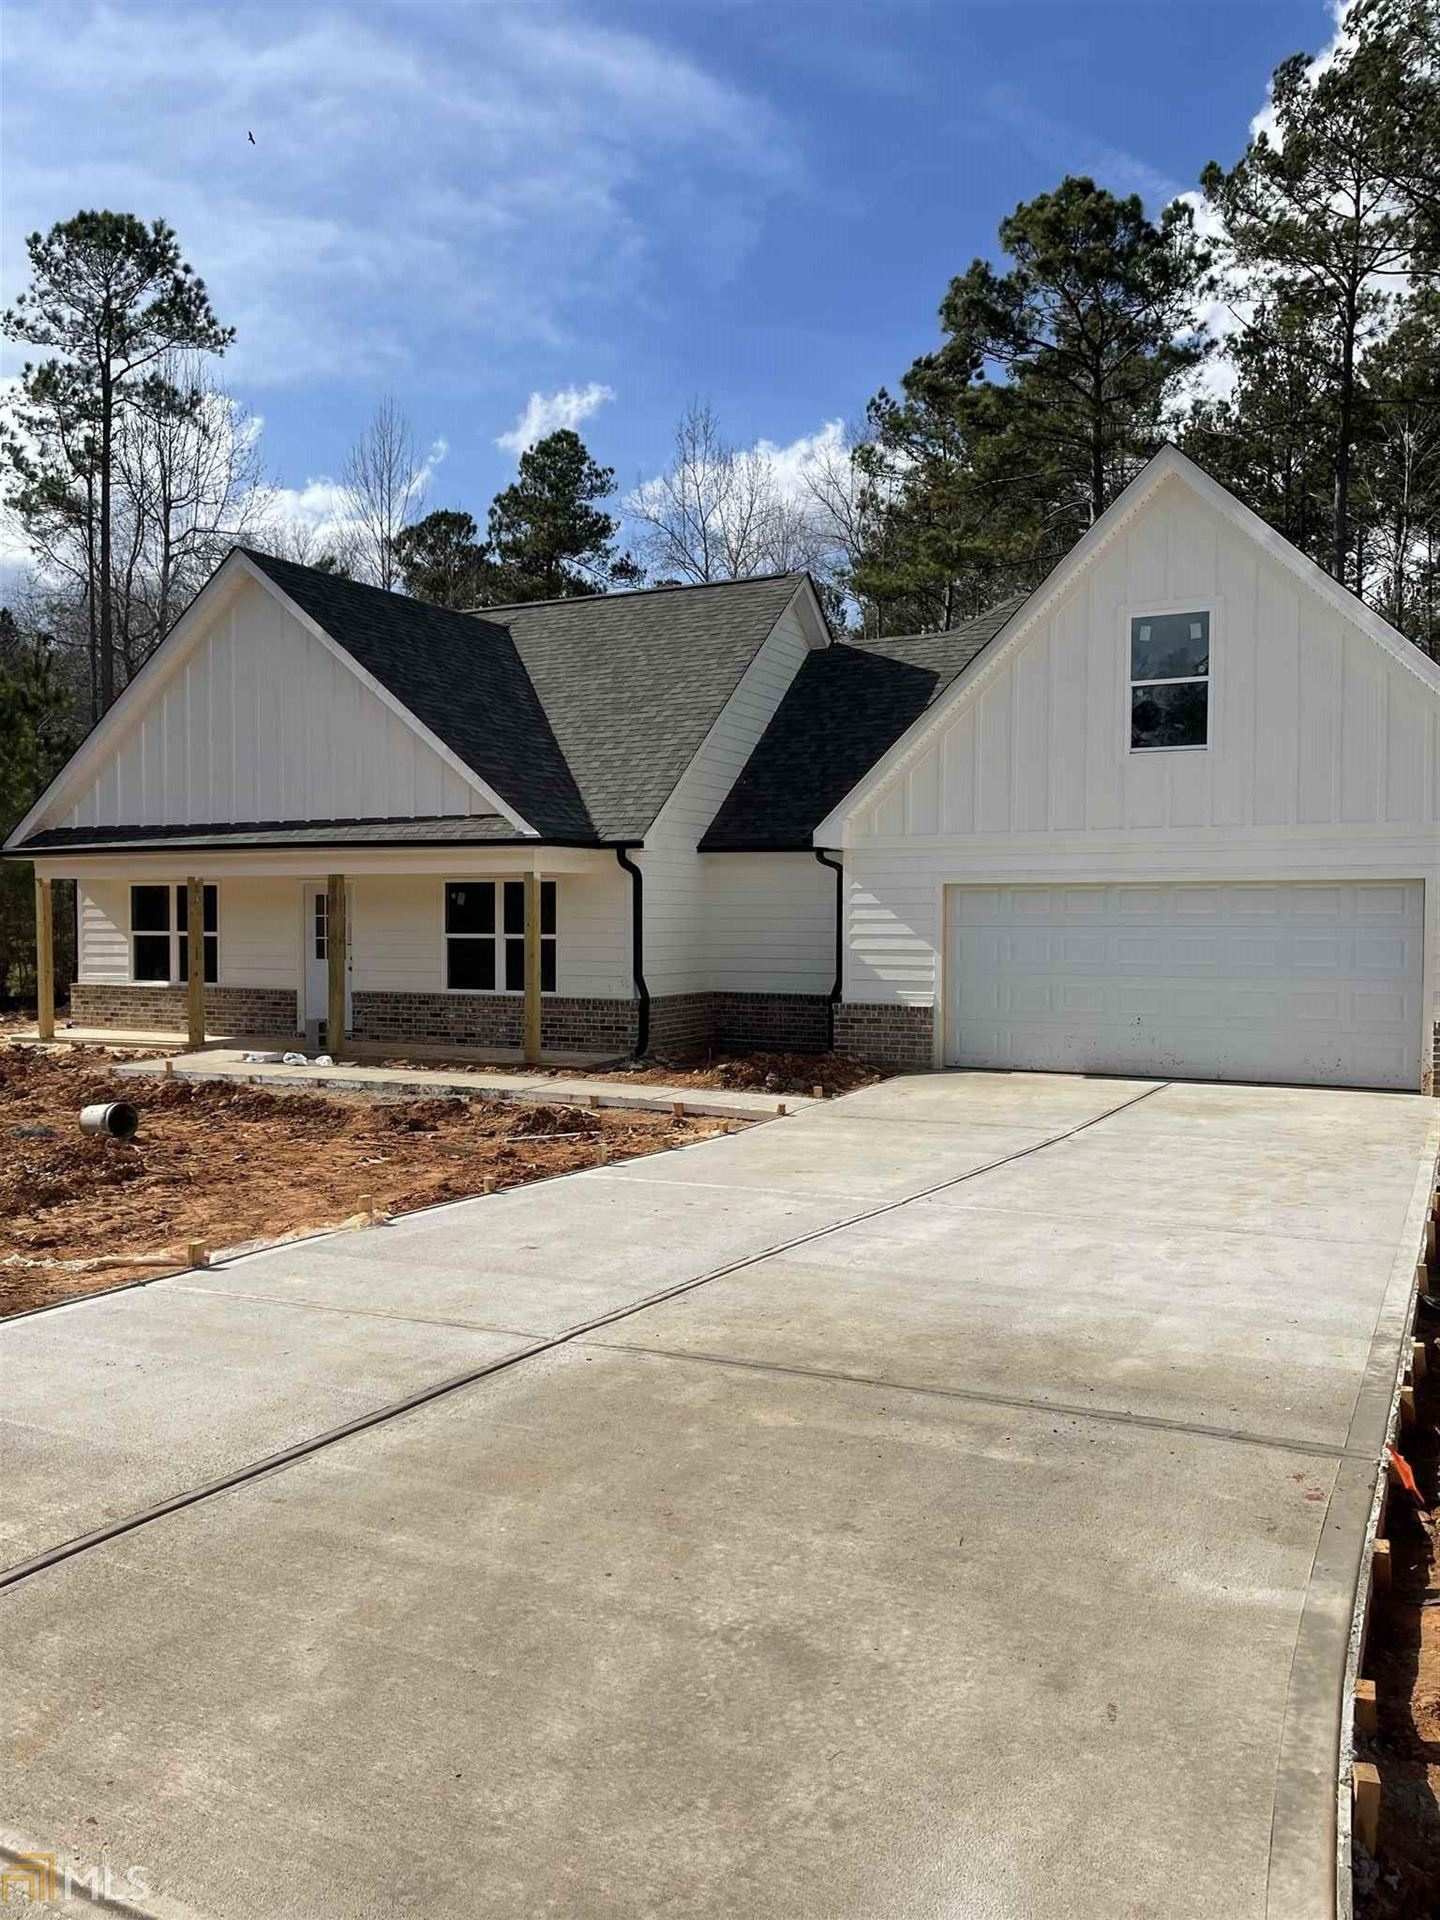 152 Willow Forest, Milledgeville, GA 31061 - MLS#: 8900604